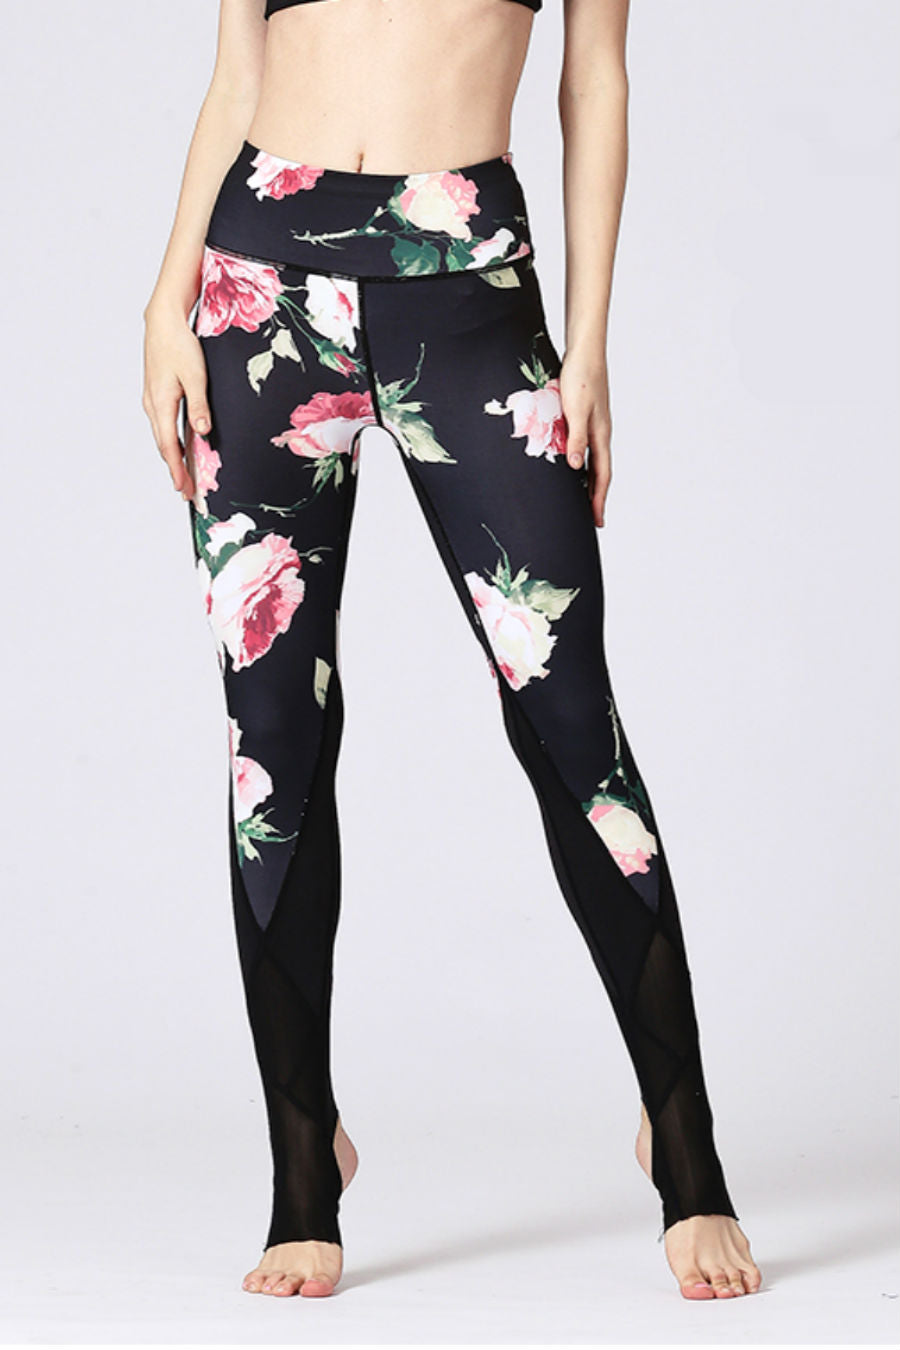 Black Flower Barre Stirrup Leggings